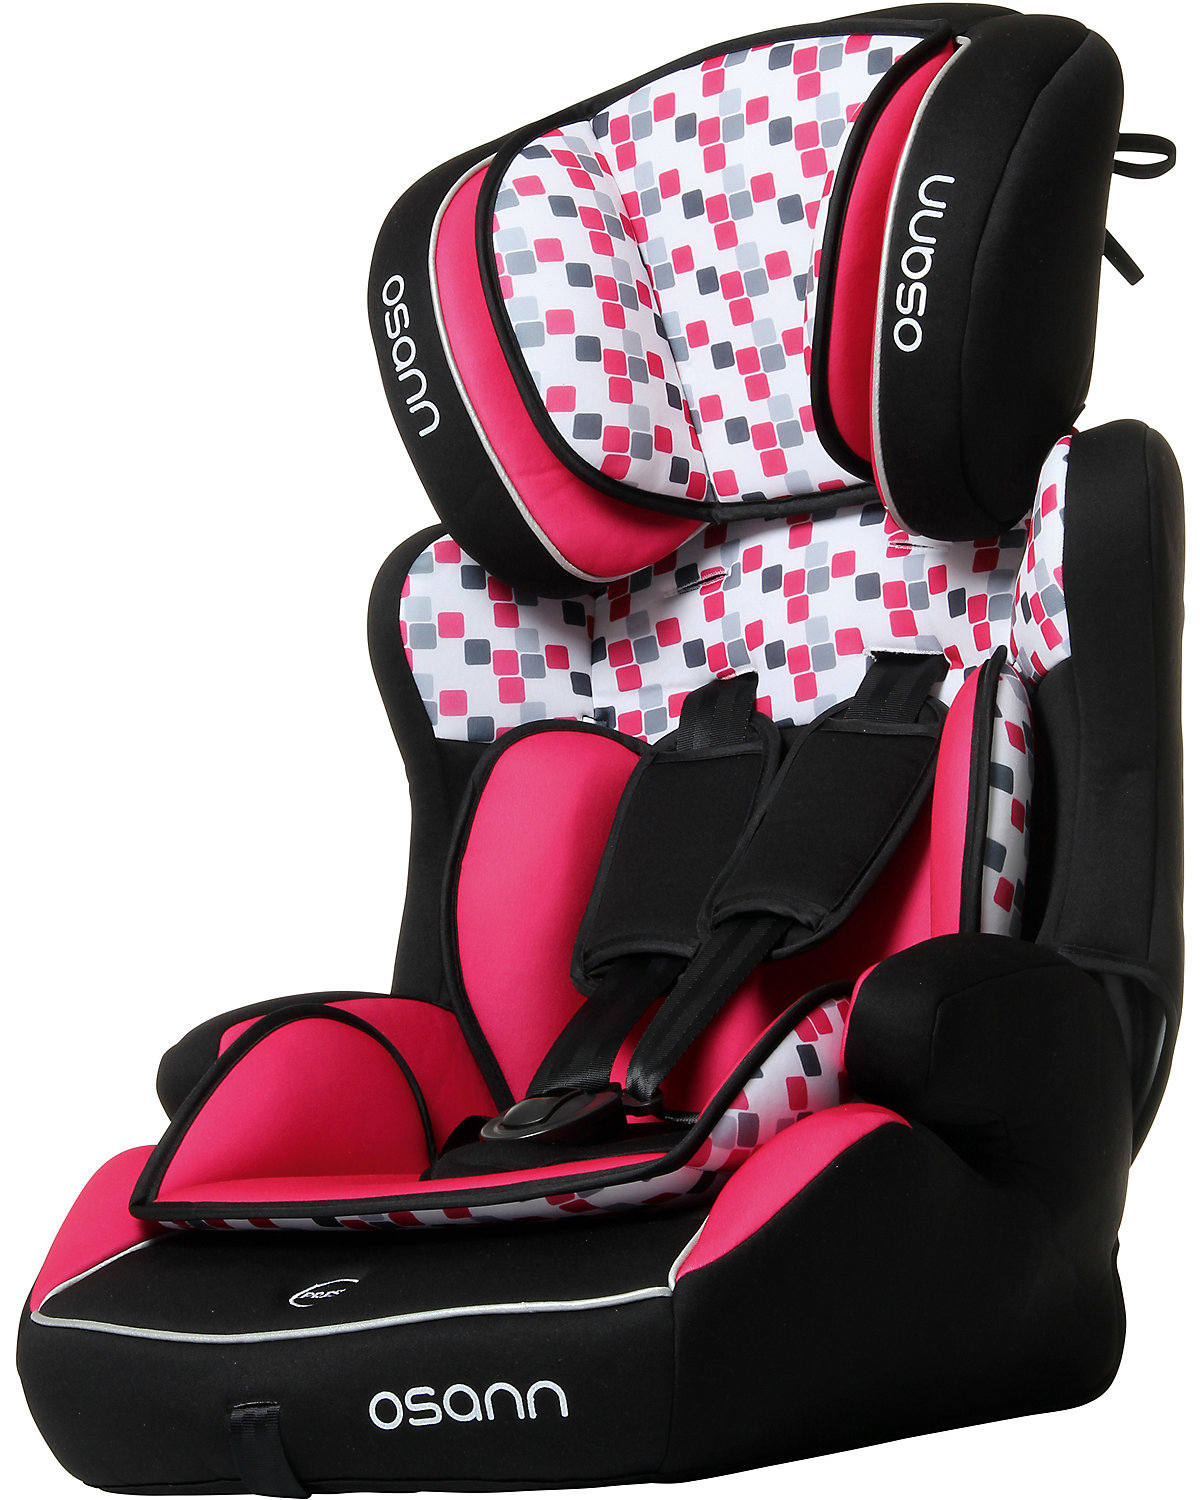 auto kindersitz lupo isofix cube pink osann mytoys. Black Bedroom Furniture Sets. Home Design Ideas